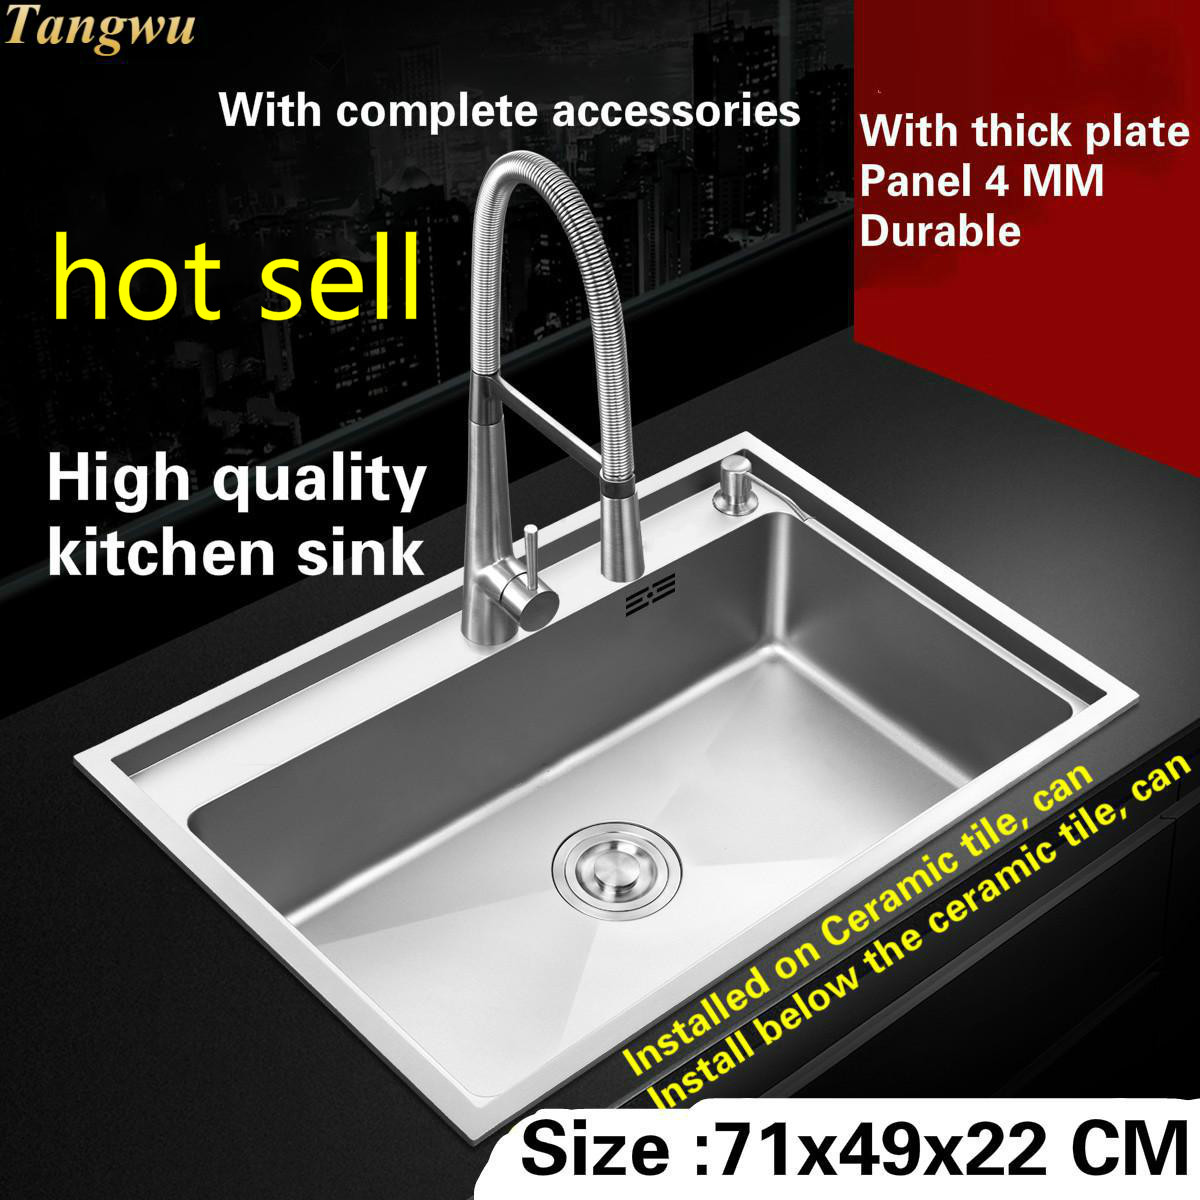 Tangwu High quality food grade 4 mm thickness of 304 stainless steel kitchen sink handmade single slot 71x49x22 CMTangwu High quality food grade 4 mm thickness of 304 stainless steel kitchen sink handmade single slot 71x49x22 CM